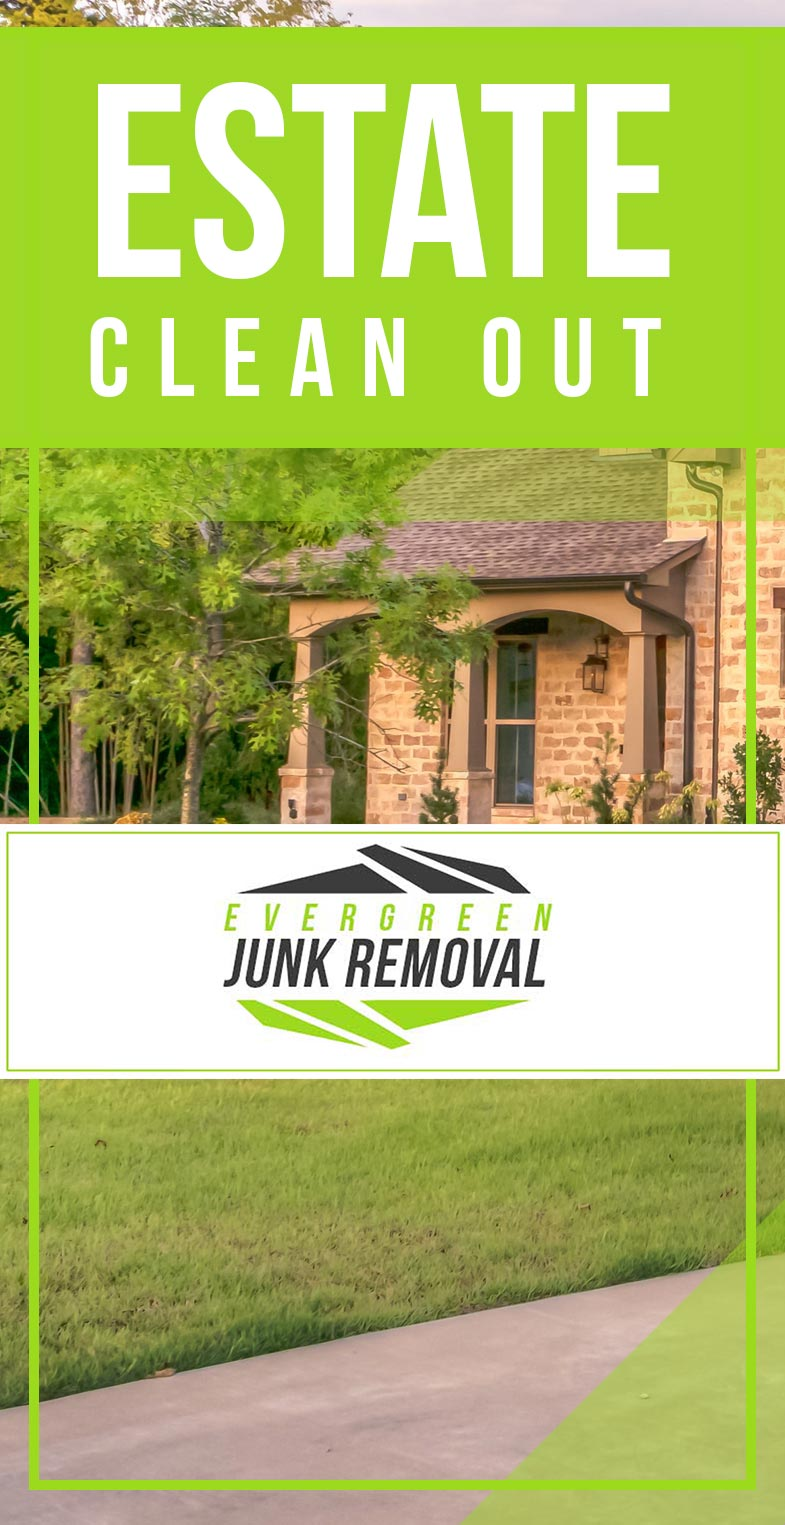 Junk Removal Palm Beach Shores Estate Clean Out